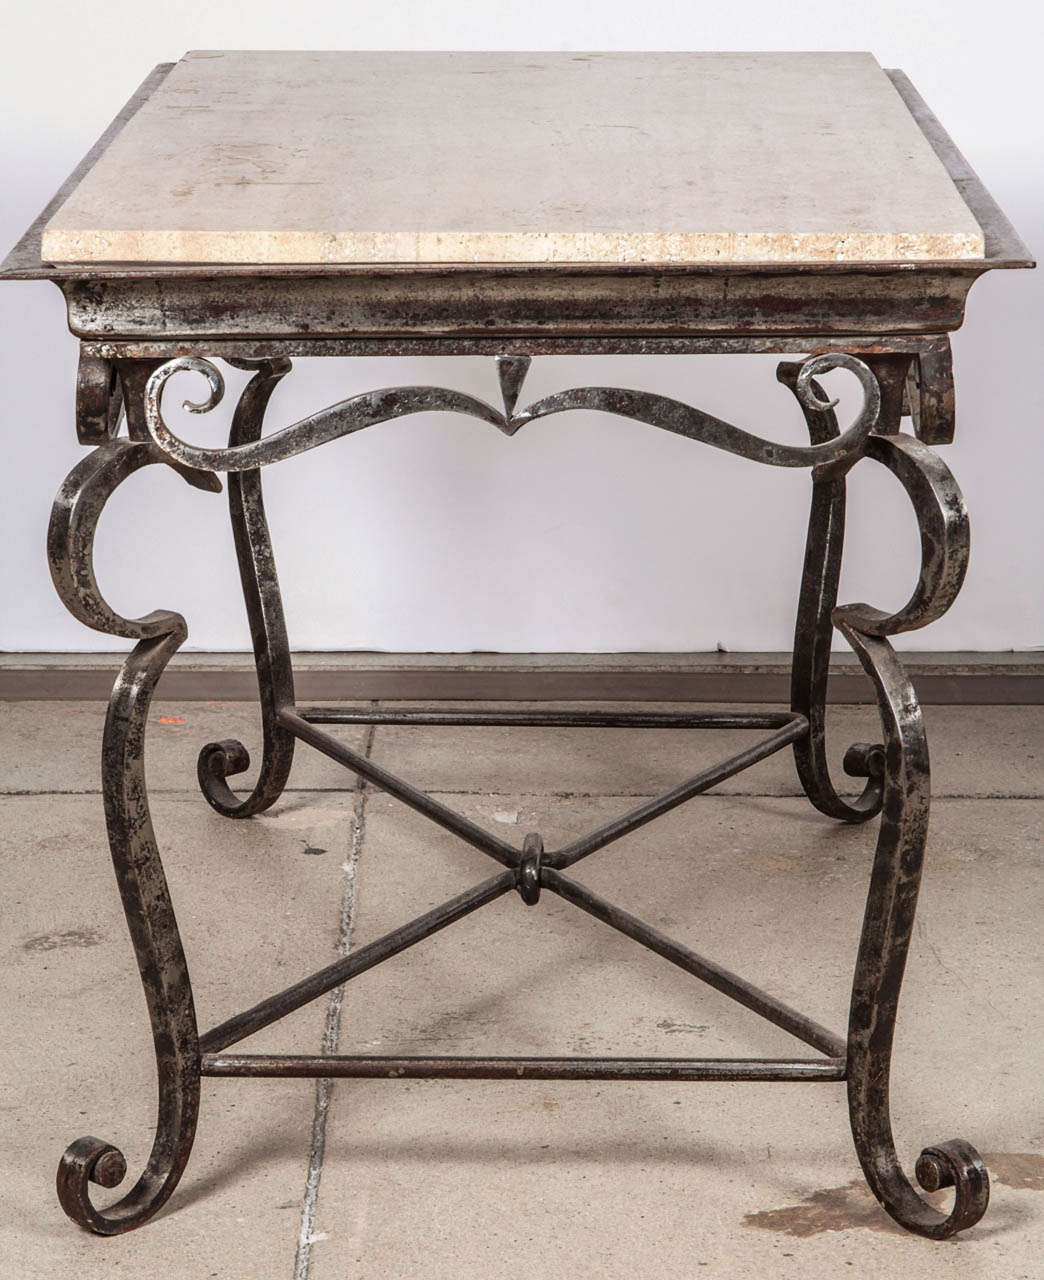 Iron Marble Top Coffee Table: Iron Coffee Table With Travertine Marble Top At 1stdibs